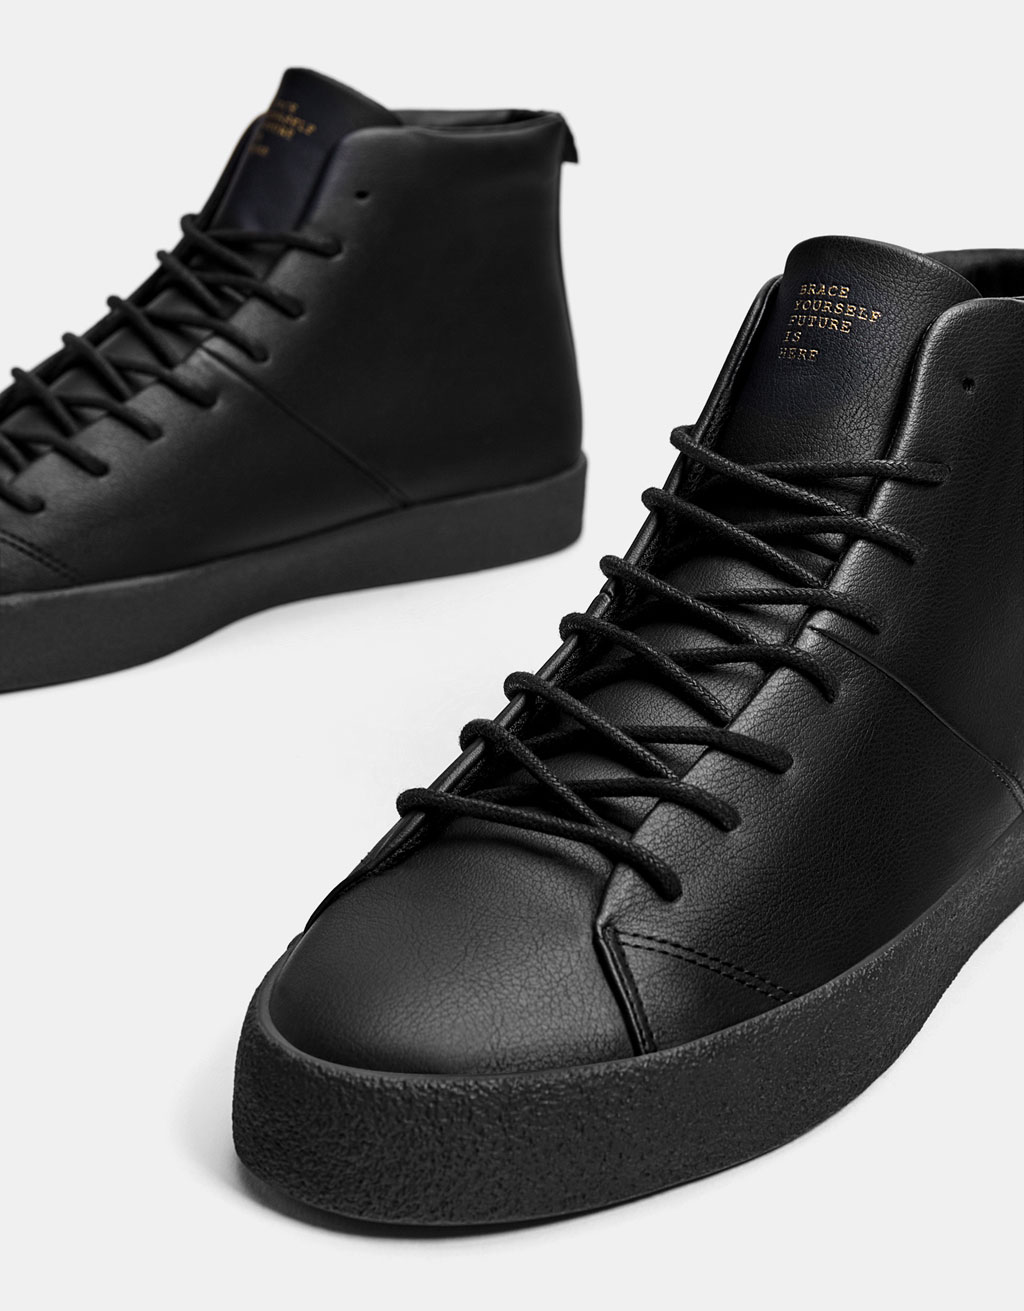 Men's lace-up high top sneakers